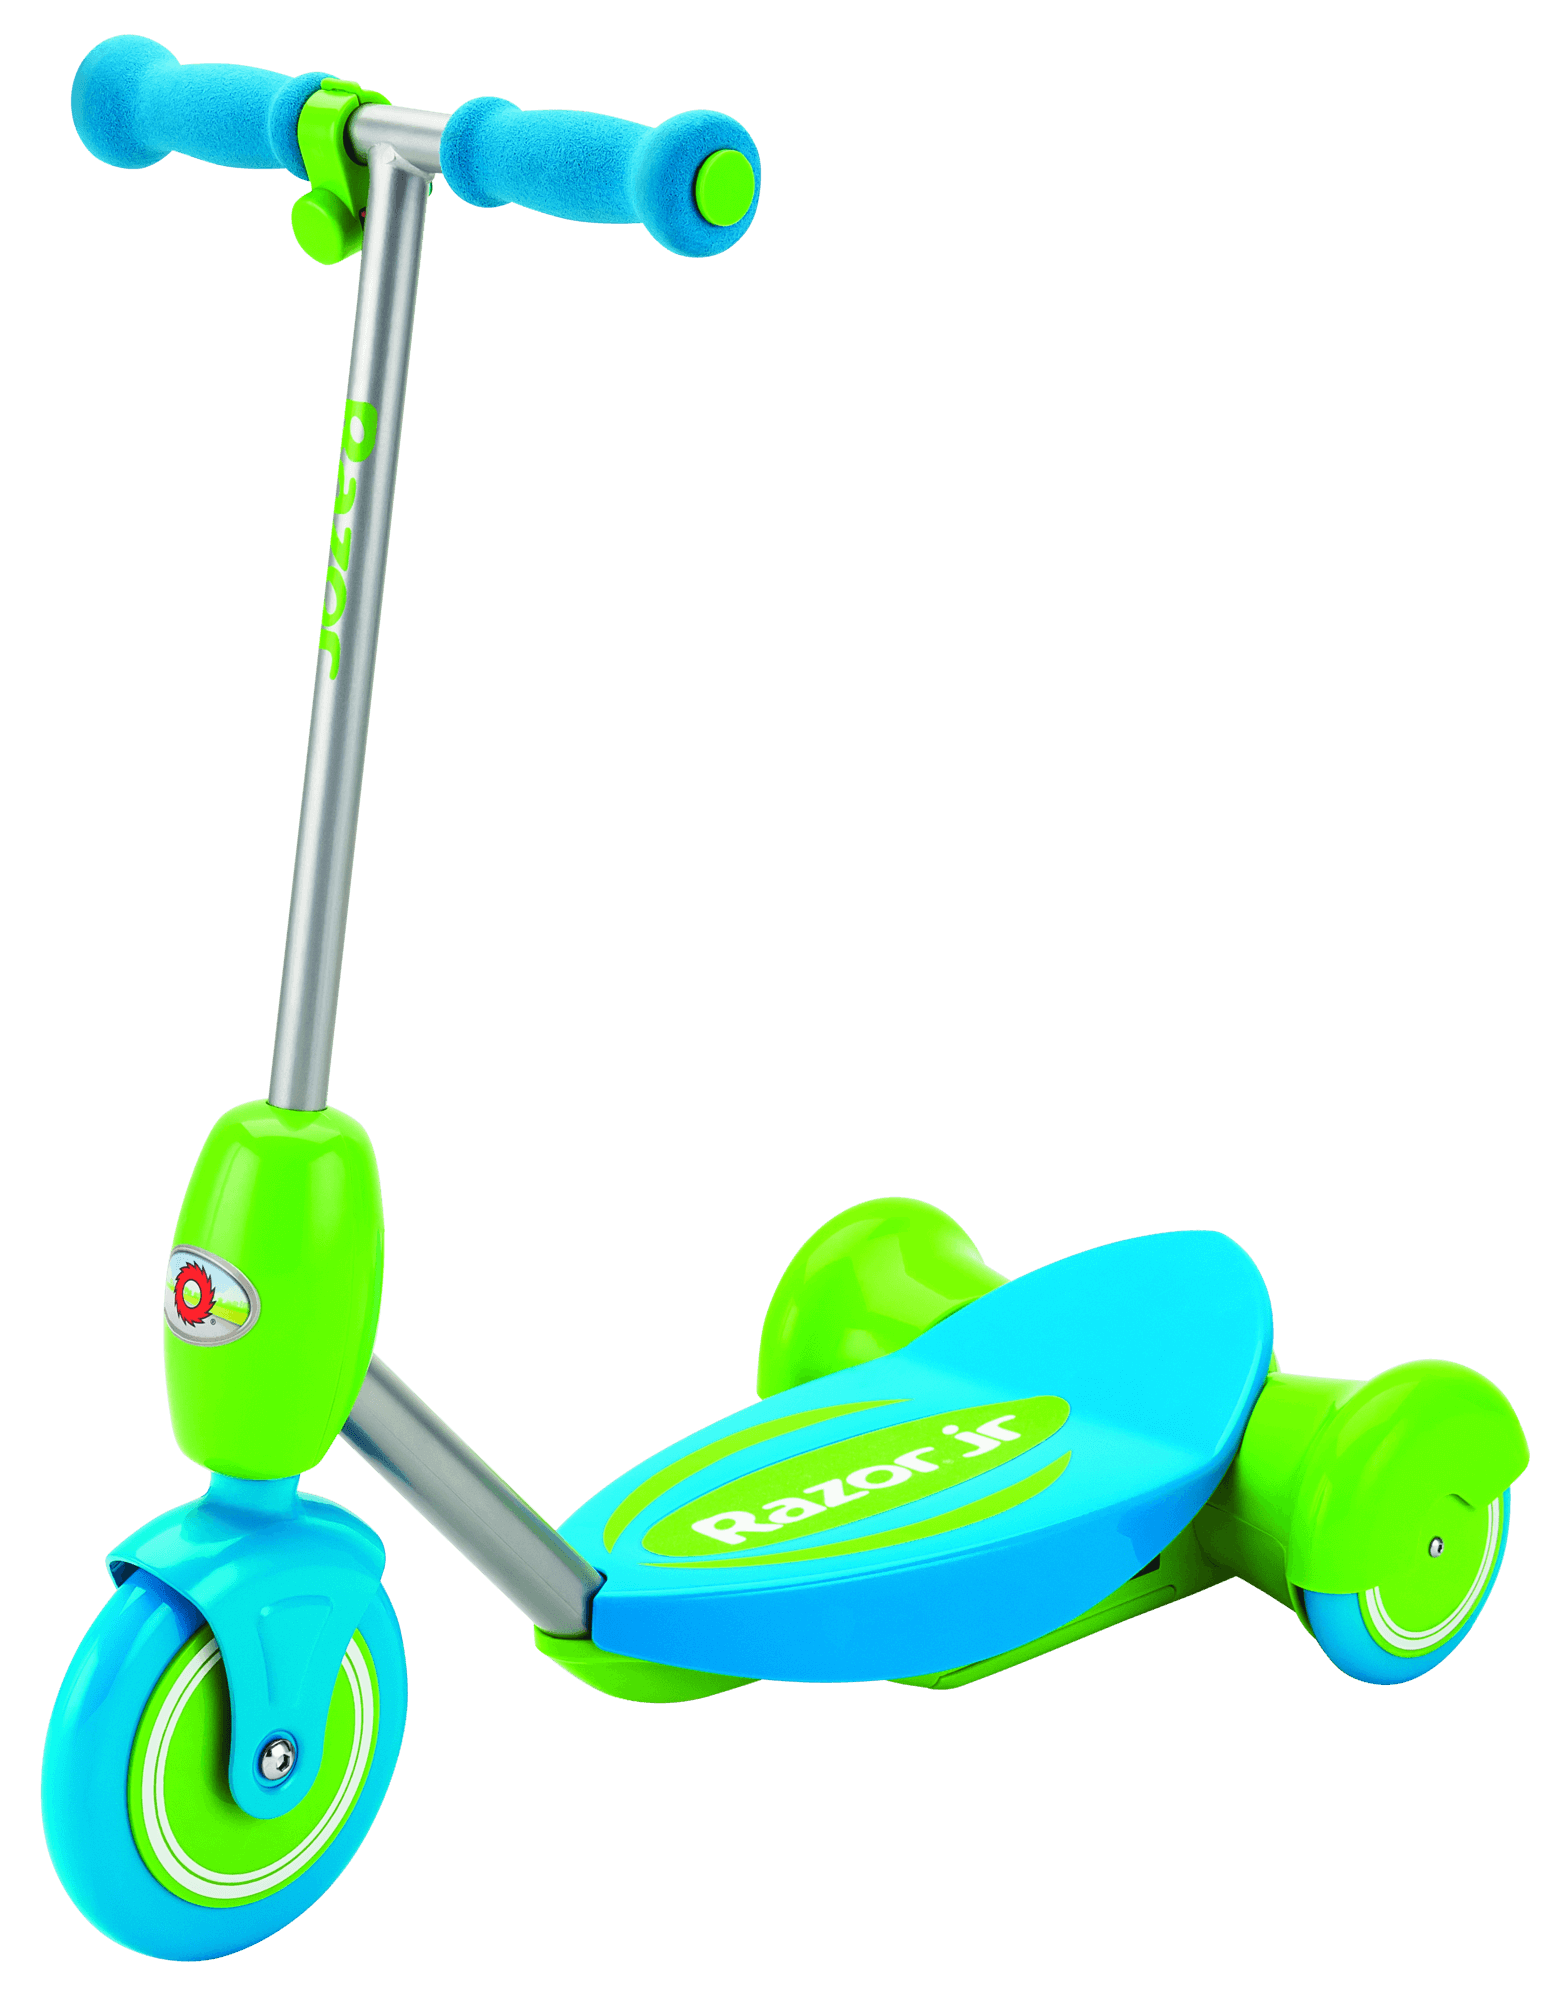 Scooter clipart transparent. Lil e electric razor